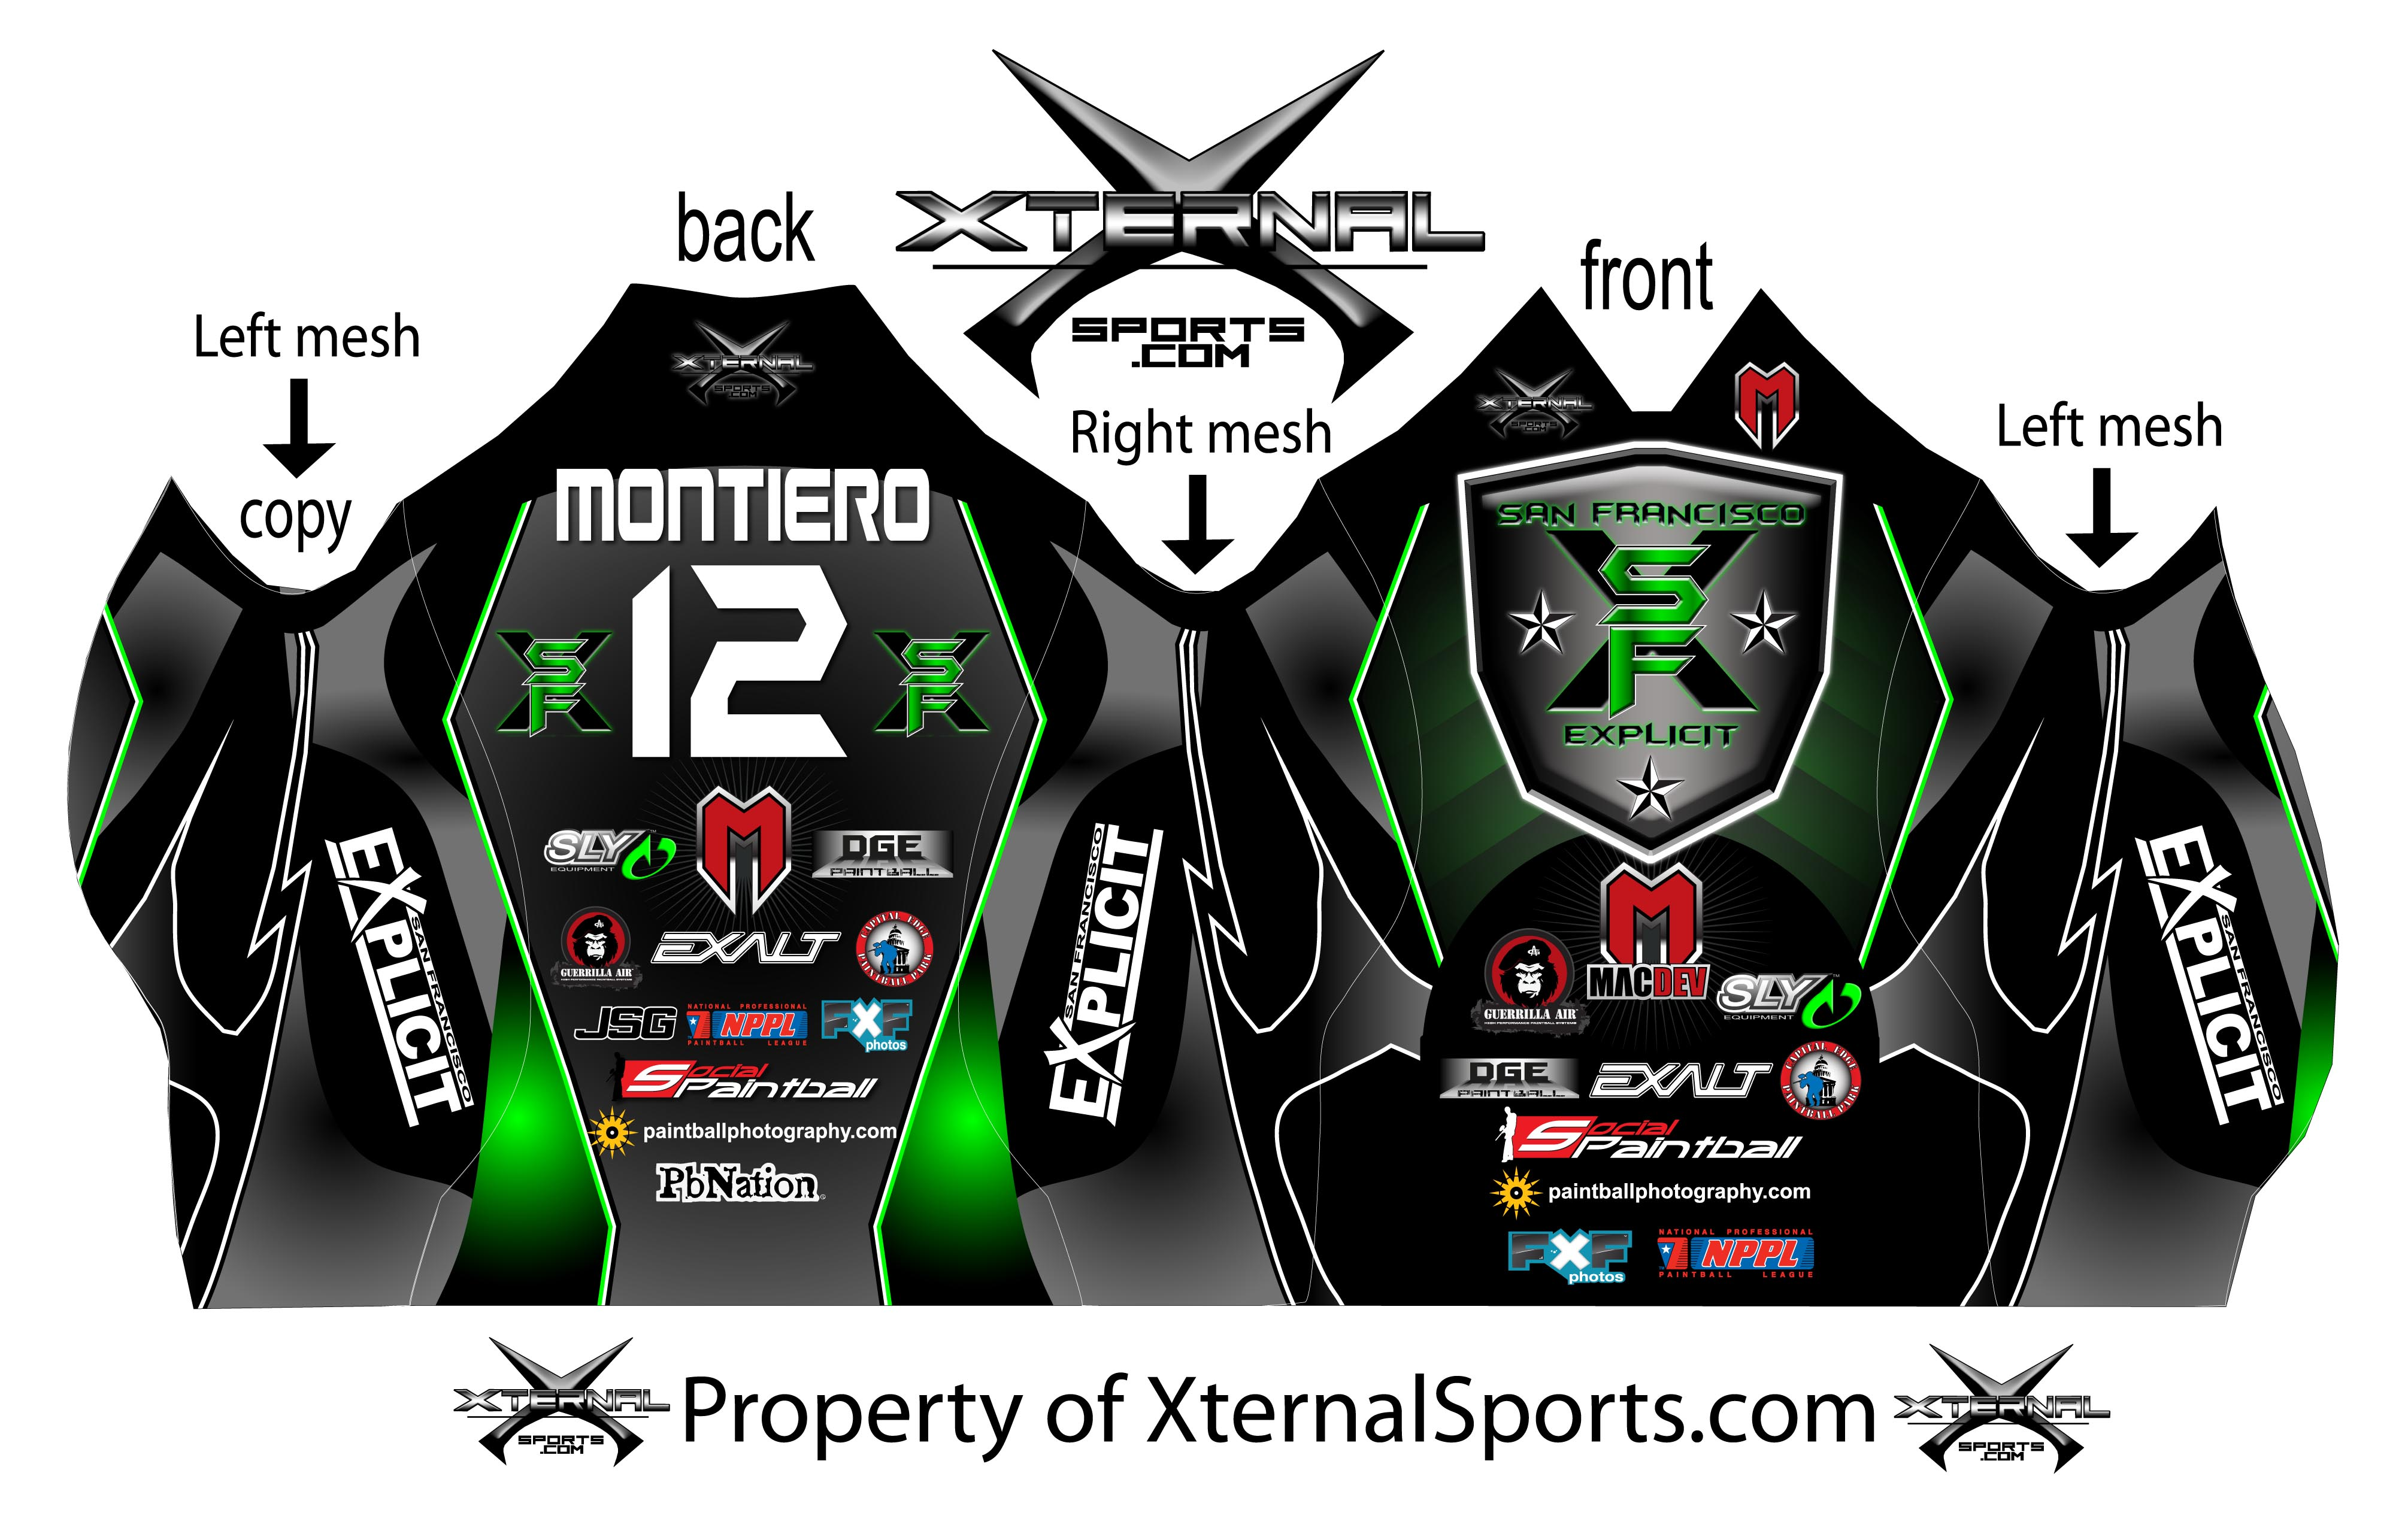 7287c4566 Exclusive: 2012 San Francisco Explicit Paintball Jersey Released ...